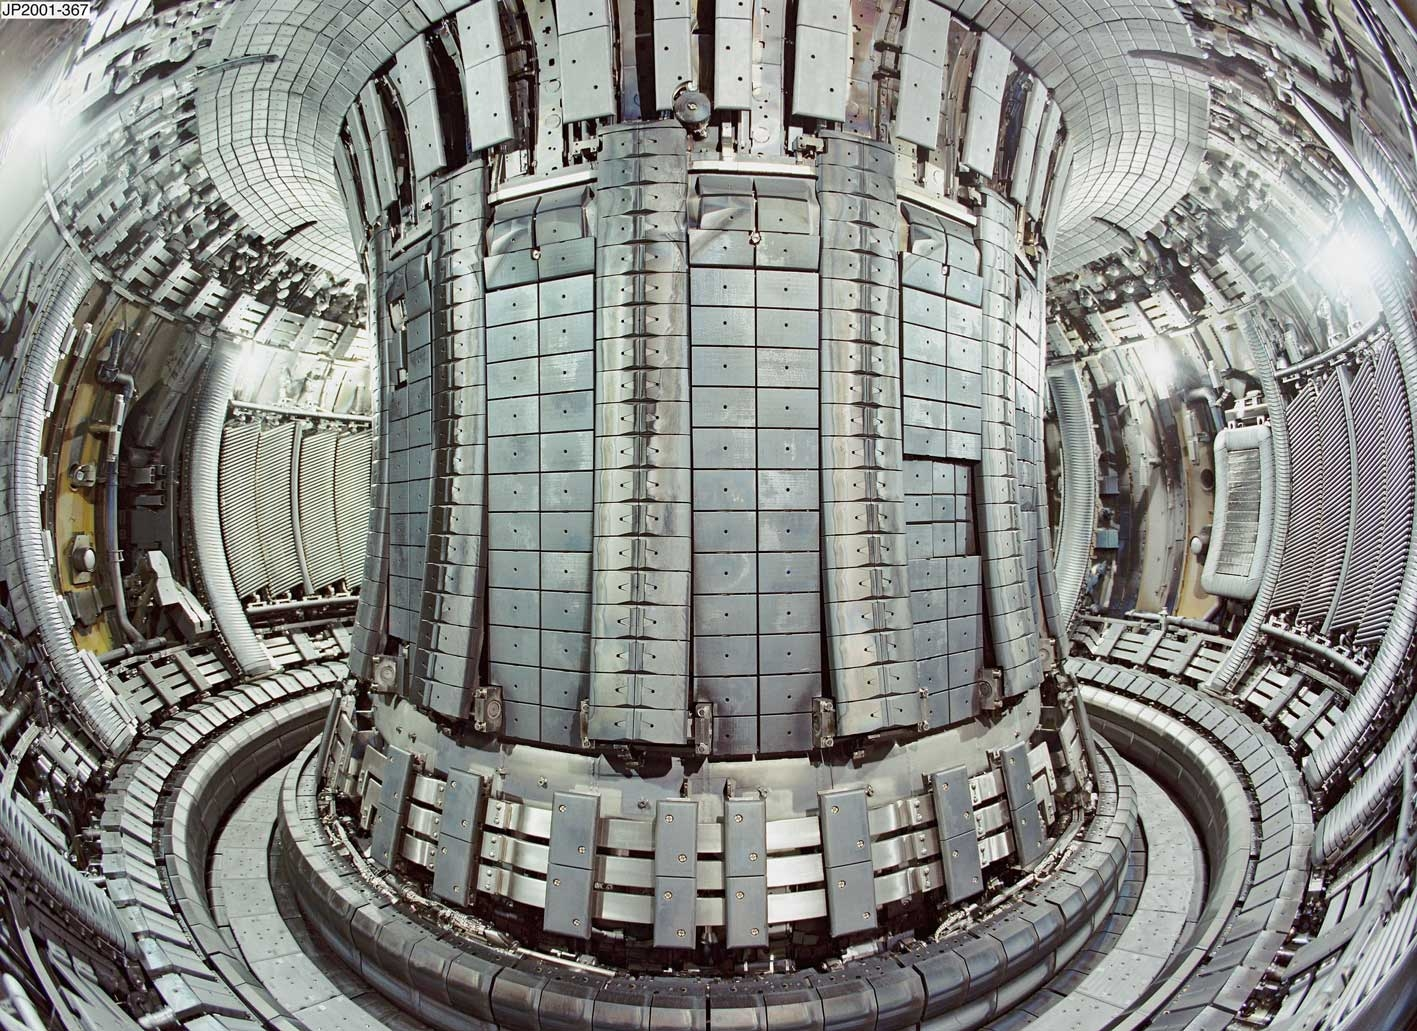 Fusion: Why we're closer (and why fusion matters)